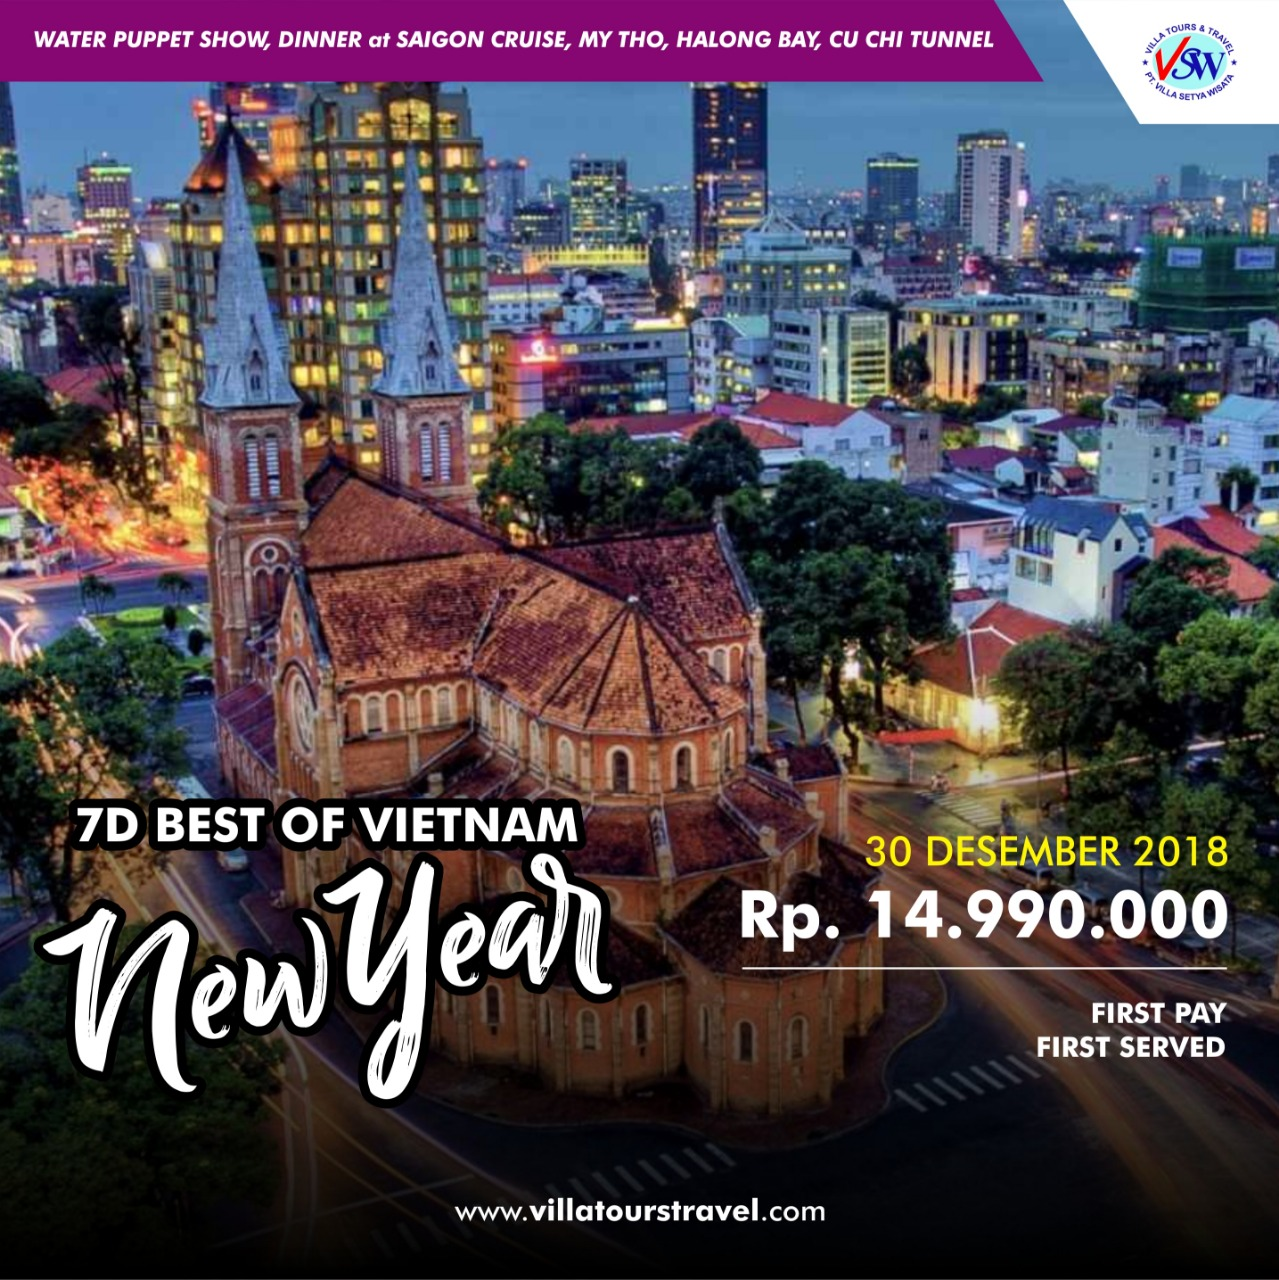 7D BEST OF VIETNAM NEW YEAR EDITION BY ROYAL BRUNEI